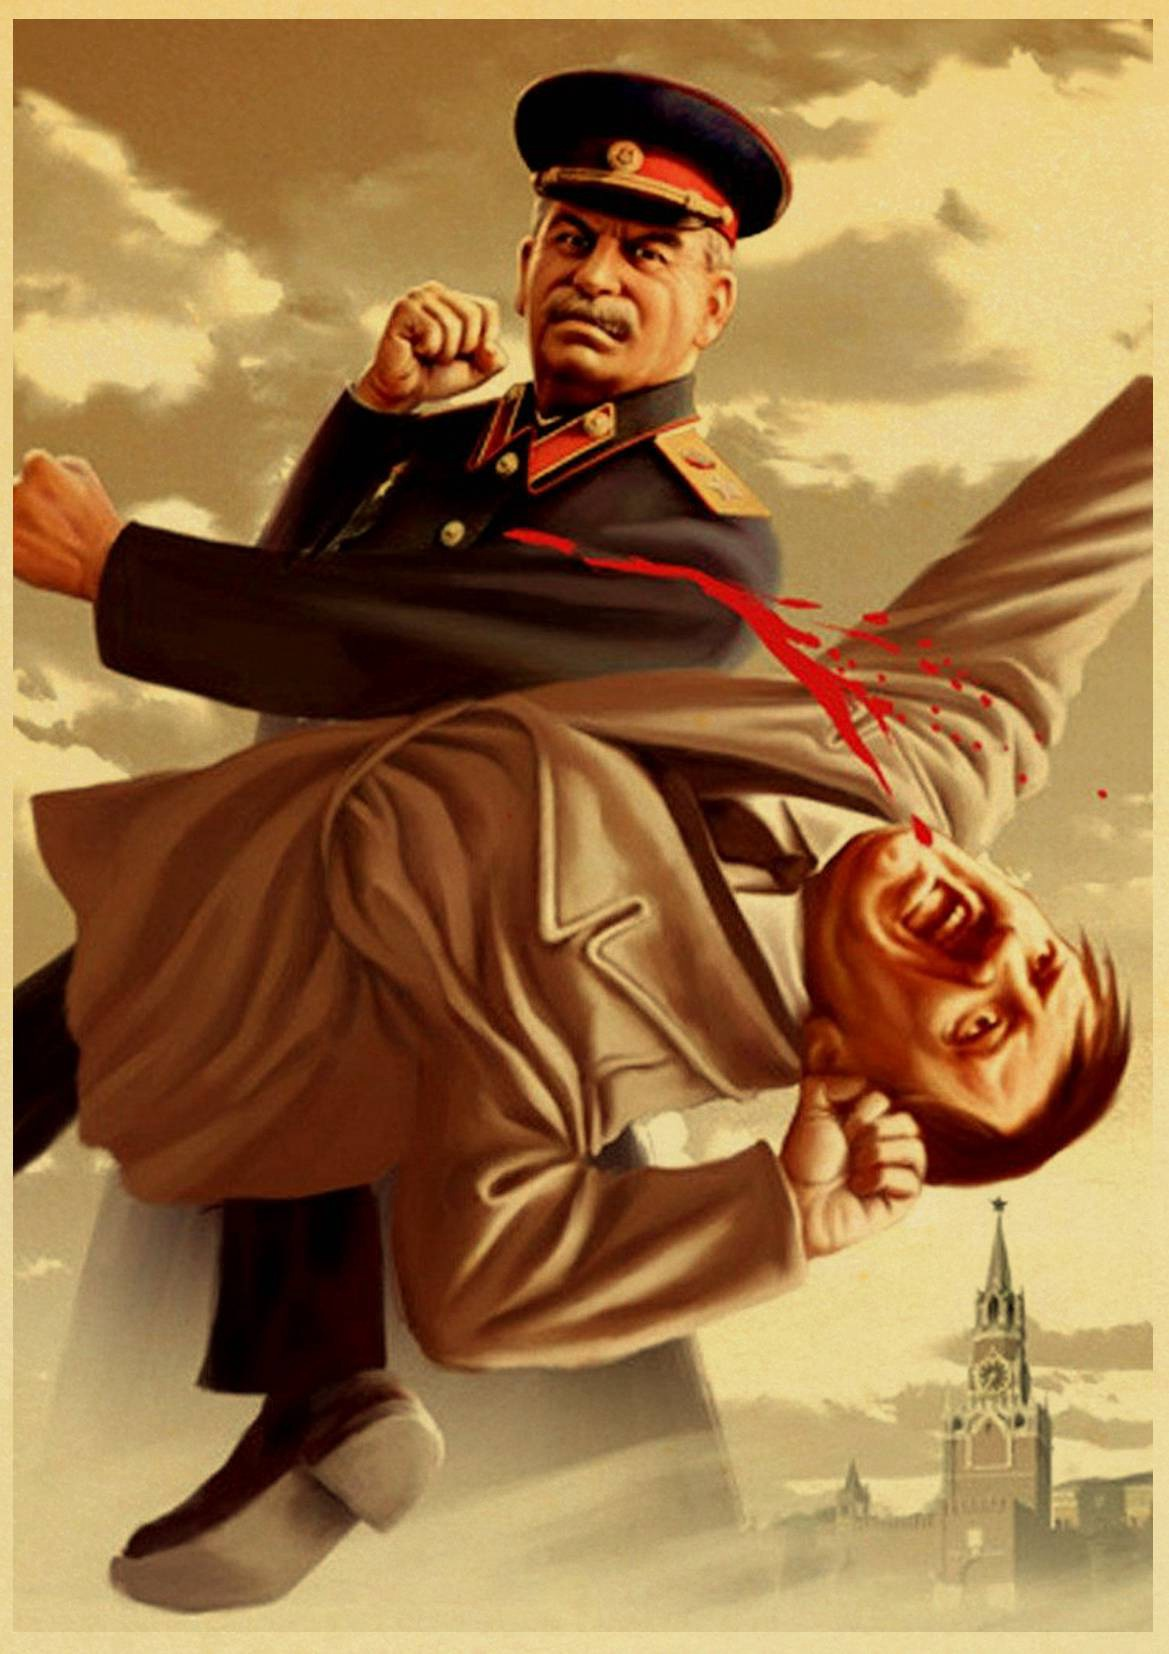 HTB1DMroX0fvK1RjSspfq6zzXFXaN Stalin USSR CCCP Retro Poster Good Quality Printed Wall Retro Posters For Home Bar Cafe Room Wall sticker